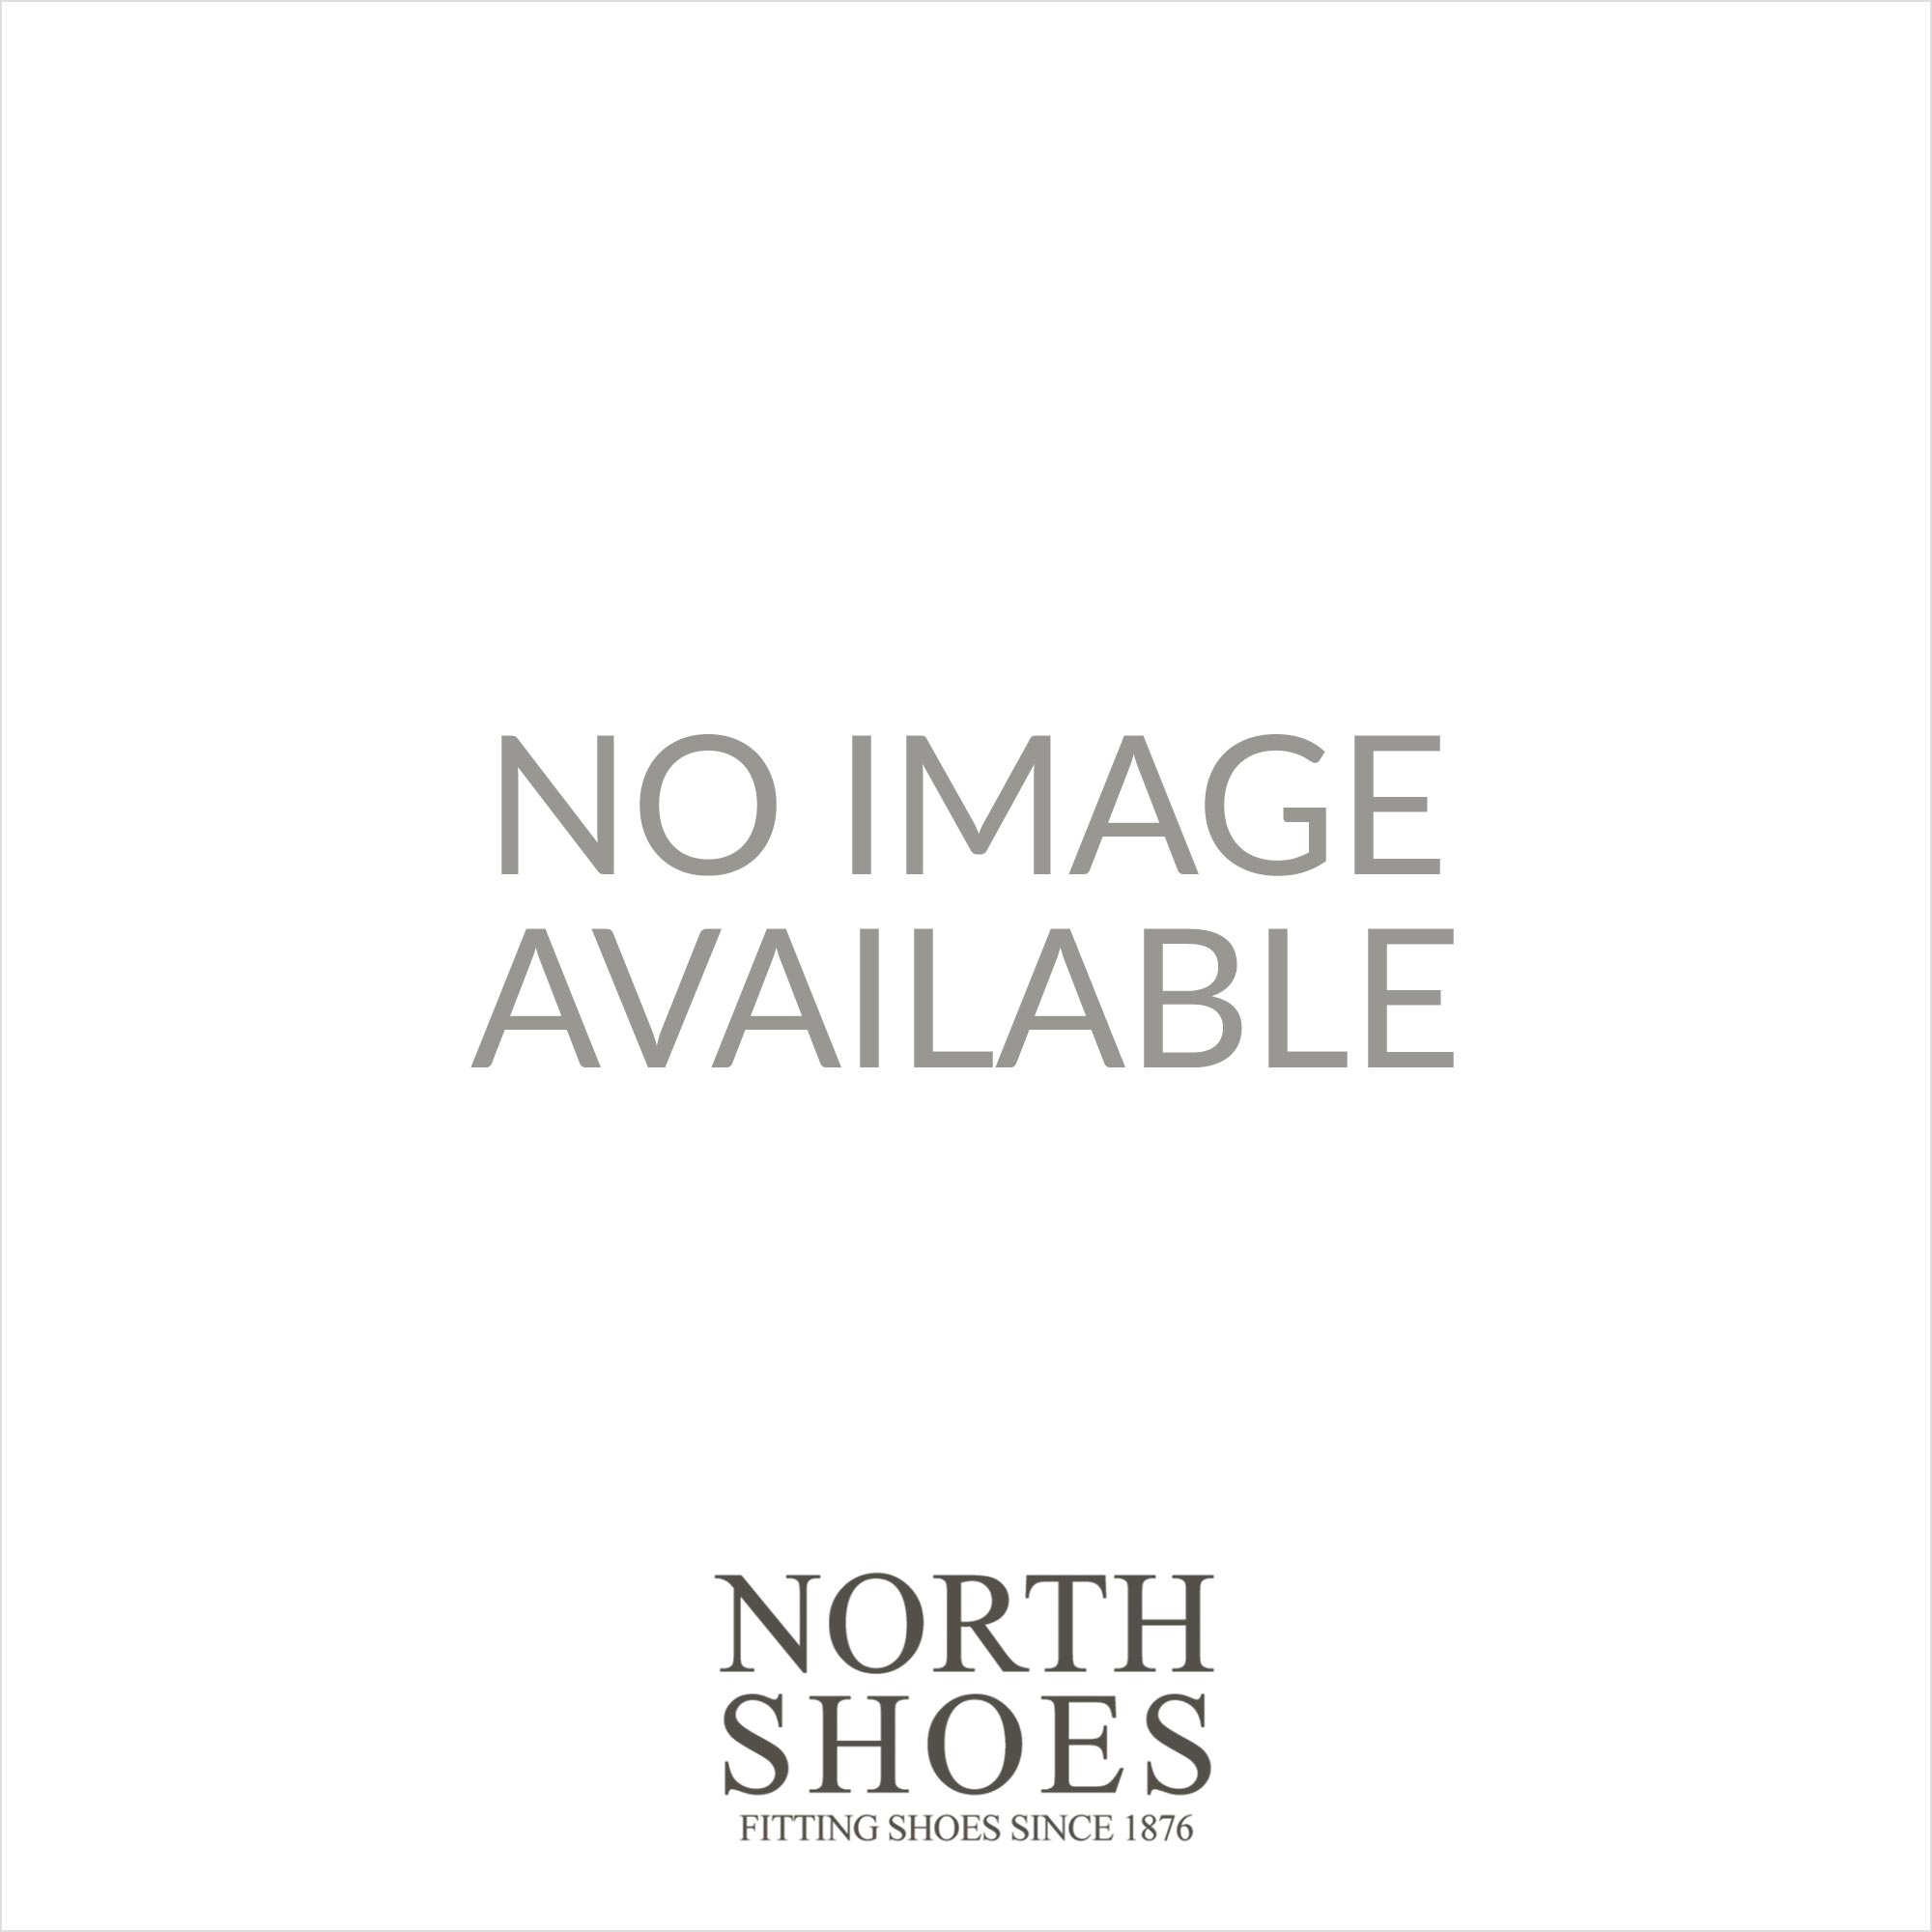 a226aac12660e2 Clarks Perri Dunes Sage Suede Leather Womens Strappy Sandals - Clarks from  North Shoes UK